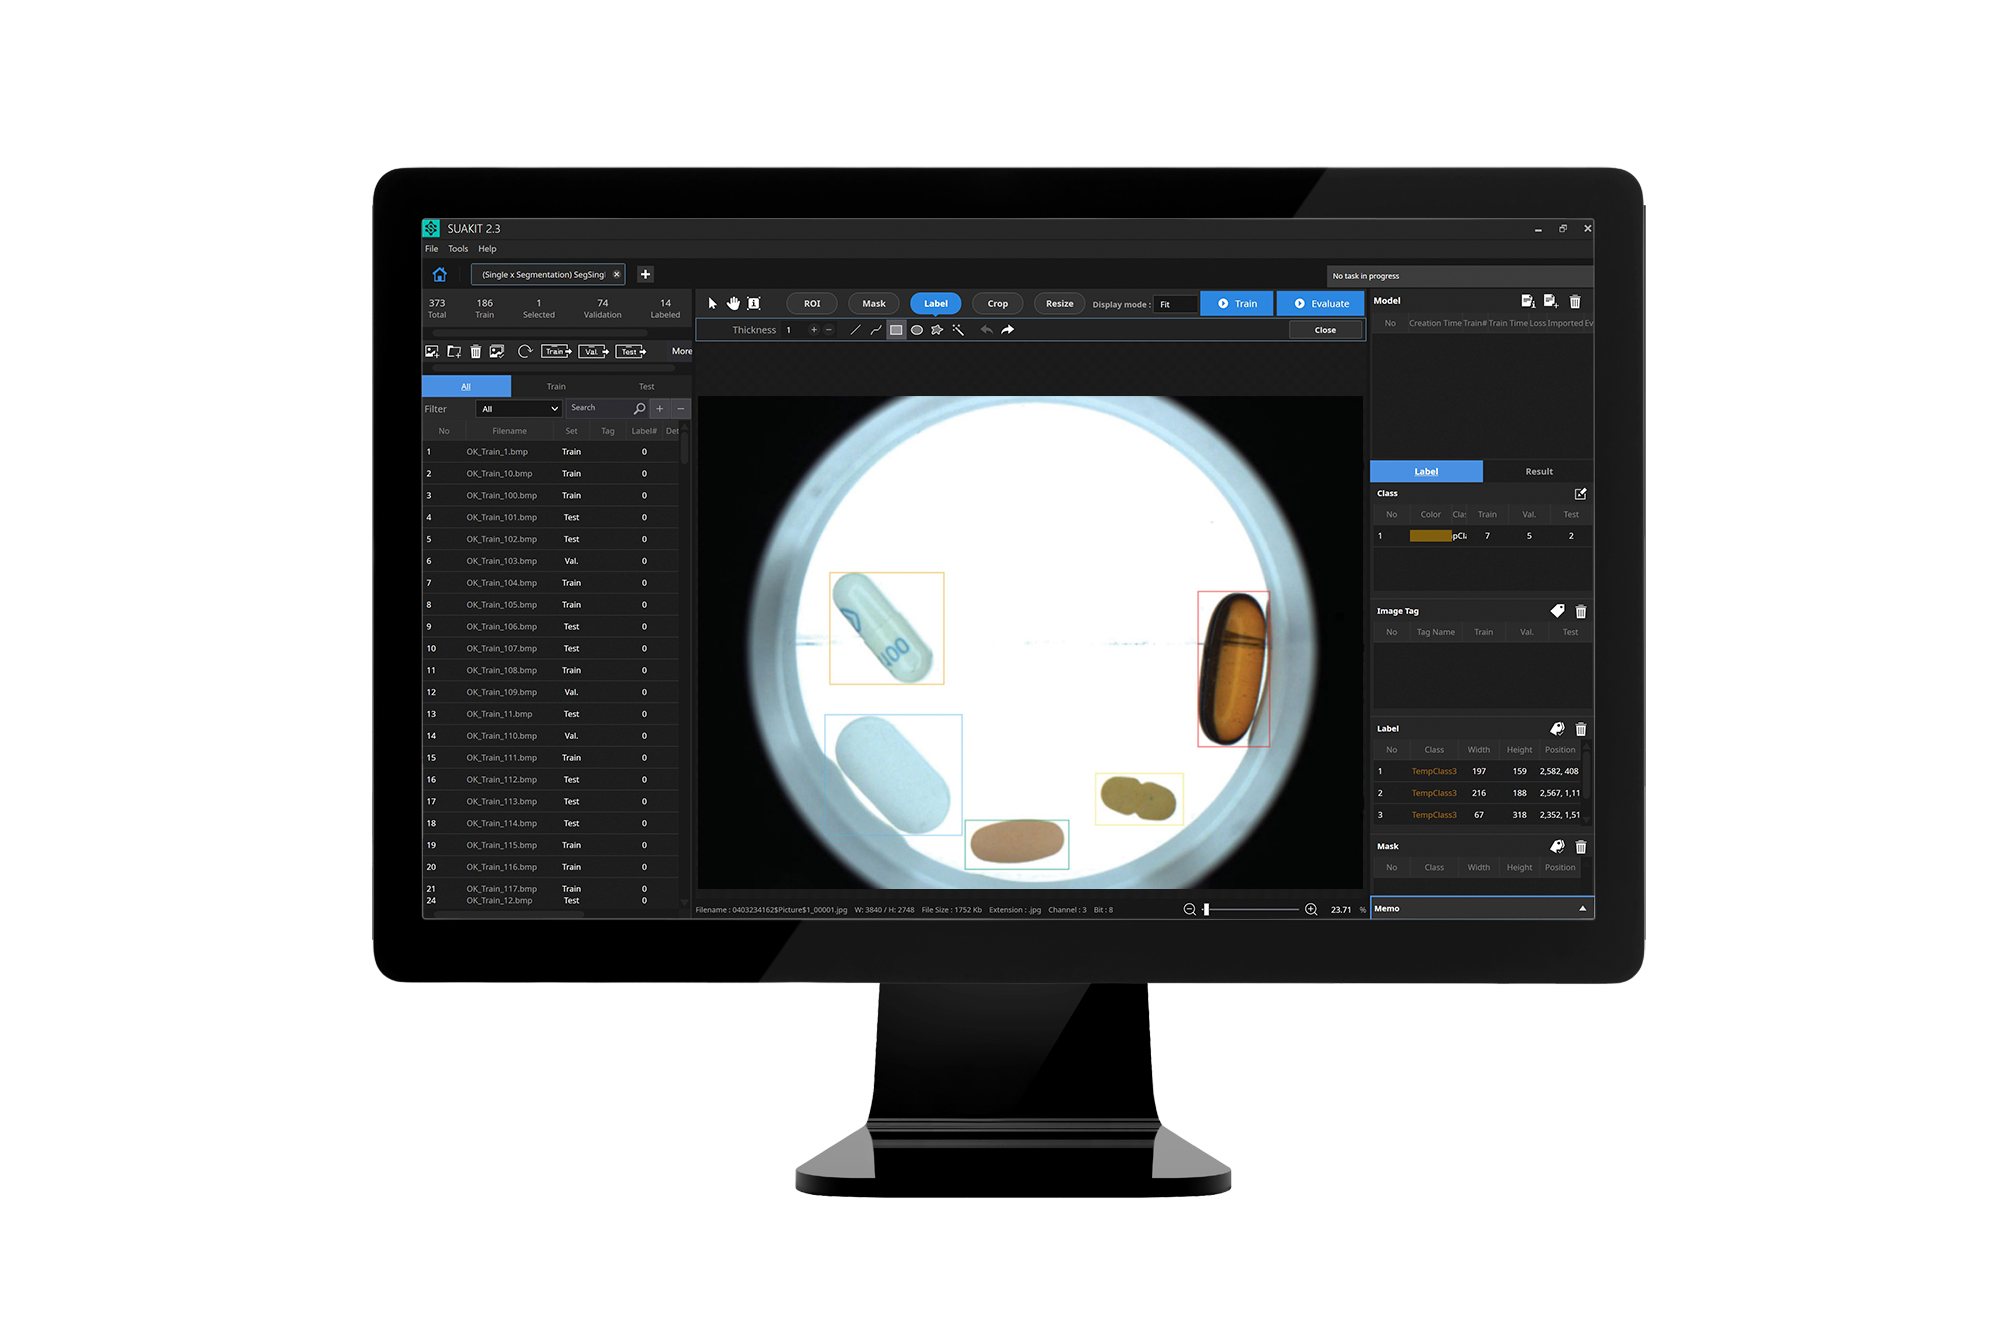 SuaKIT deep learning vision software on computer monitor